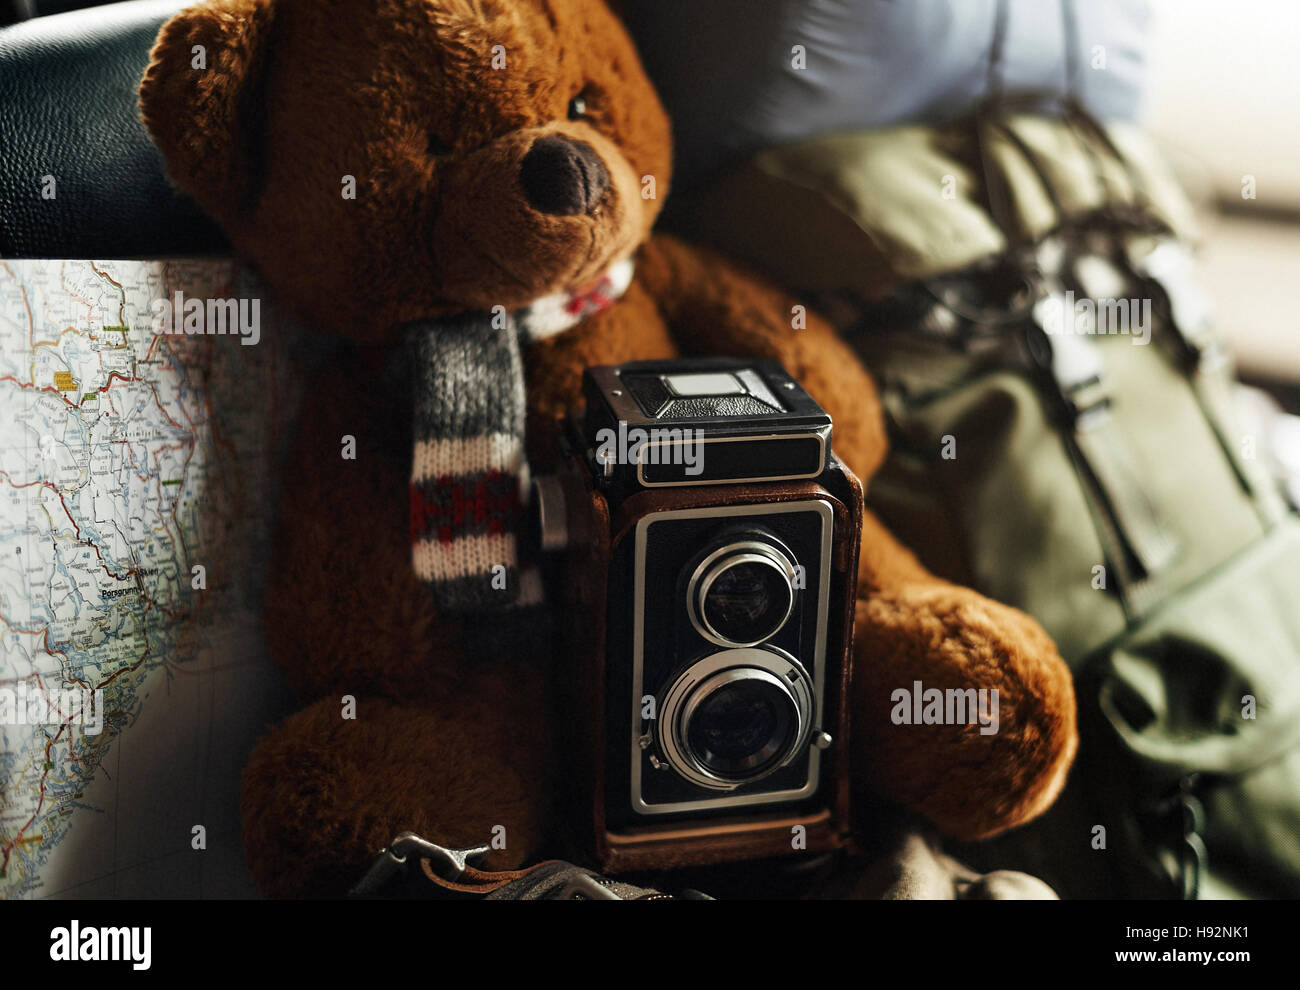 Camera Vintage Map Photograph Location Style Concept - Stock Image